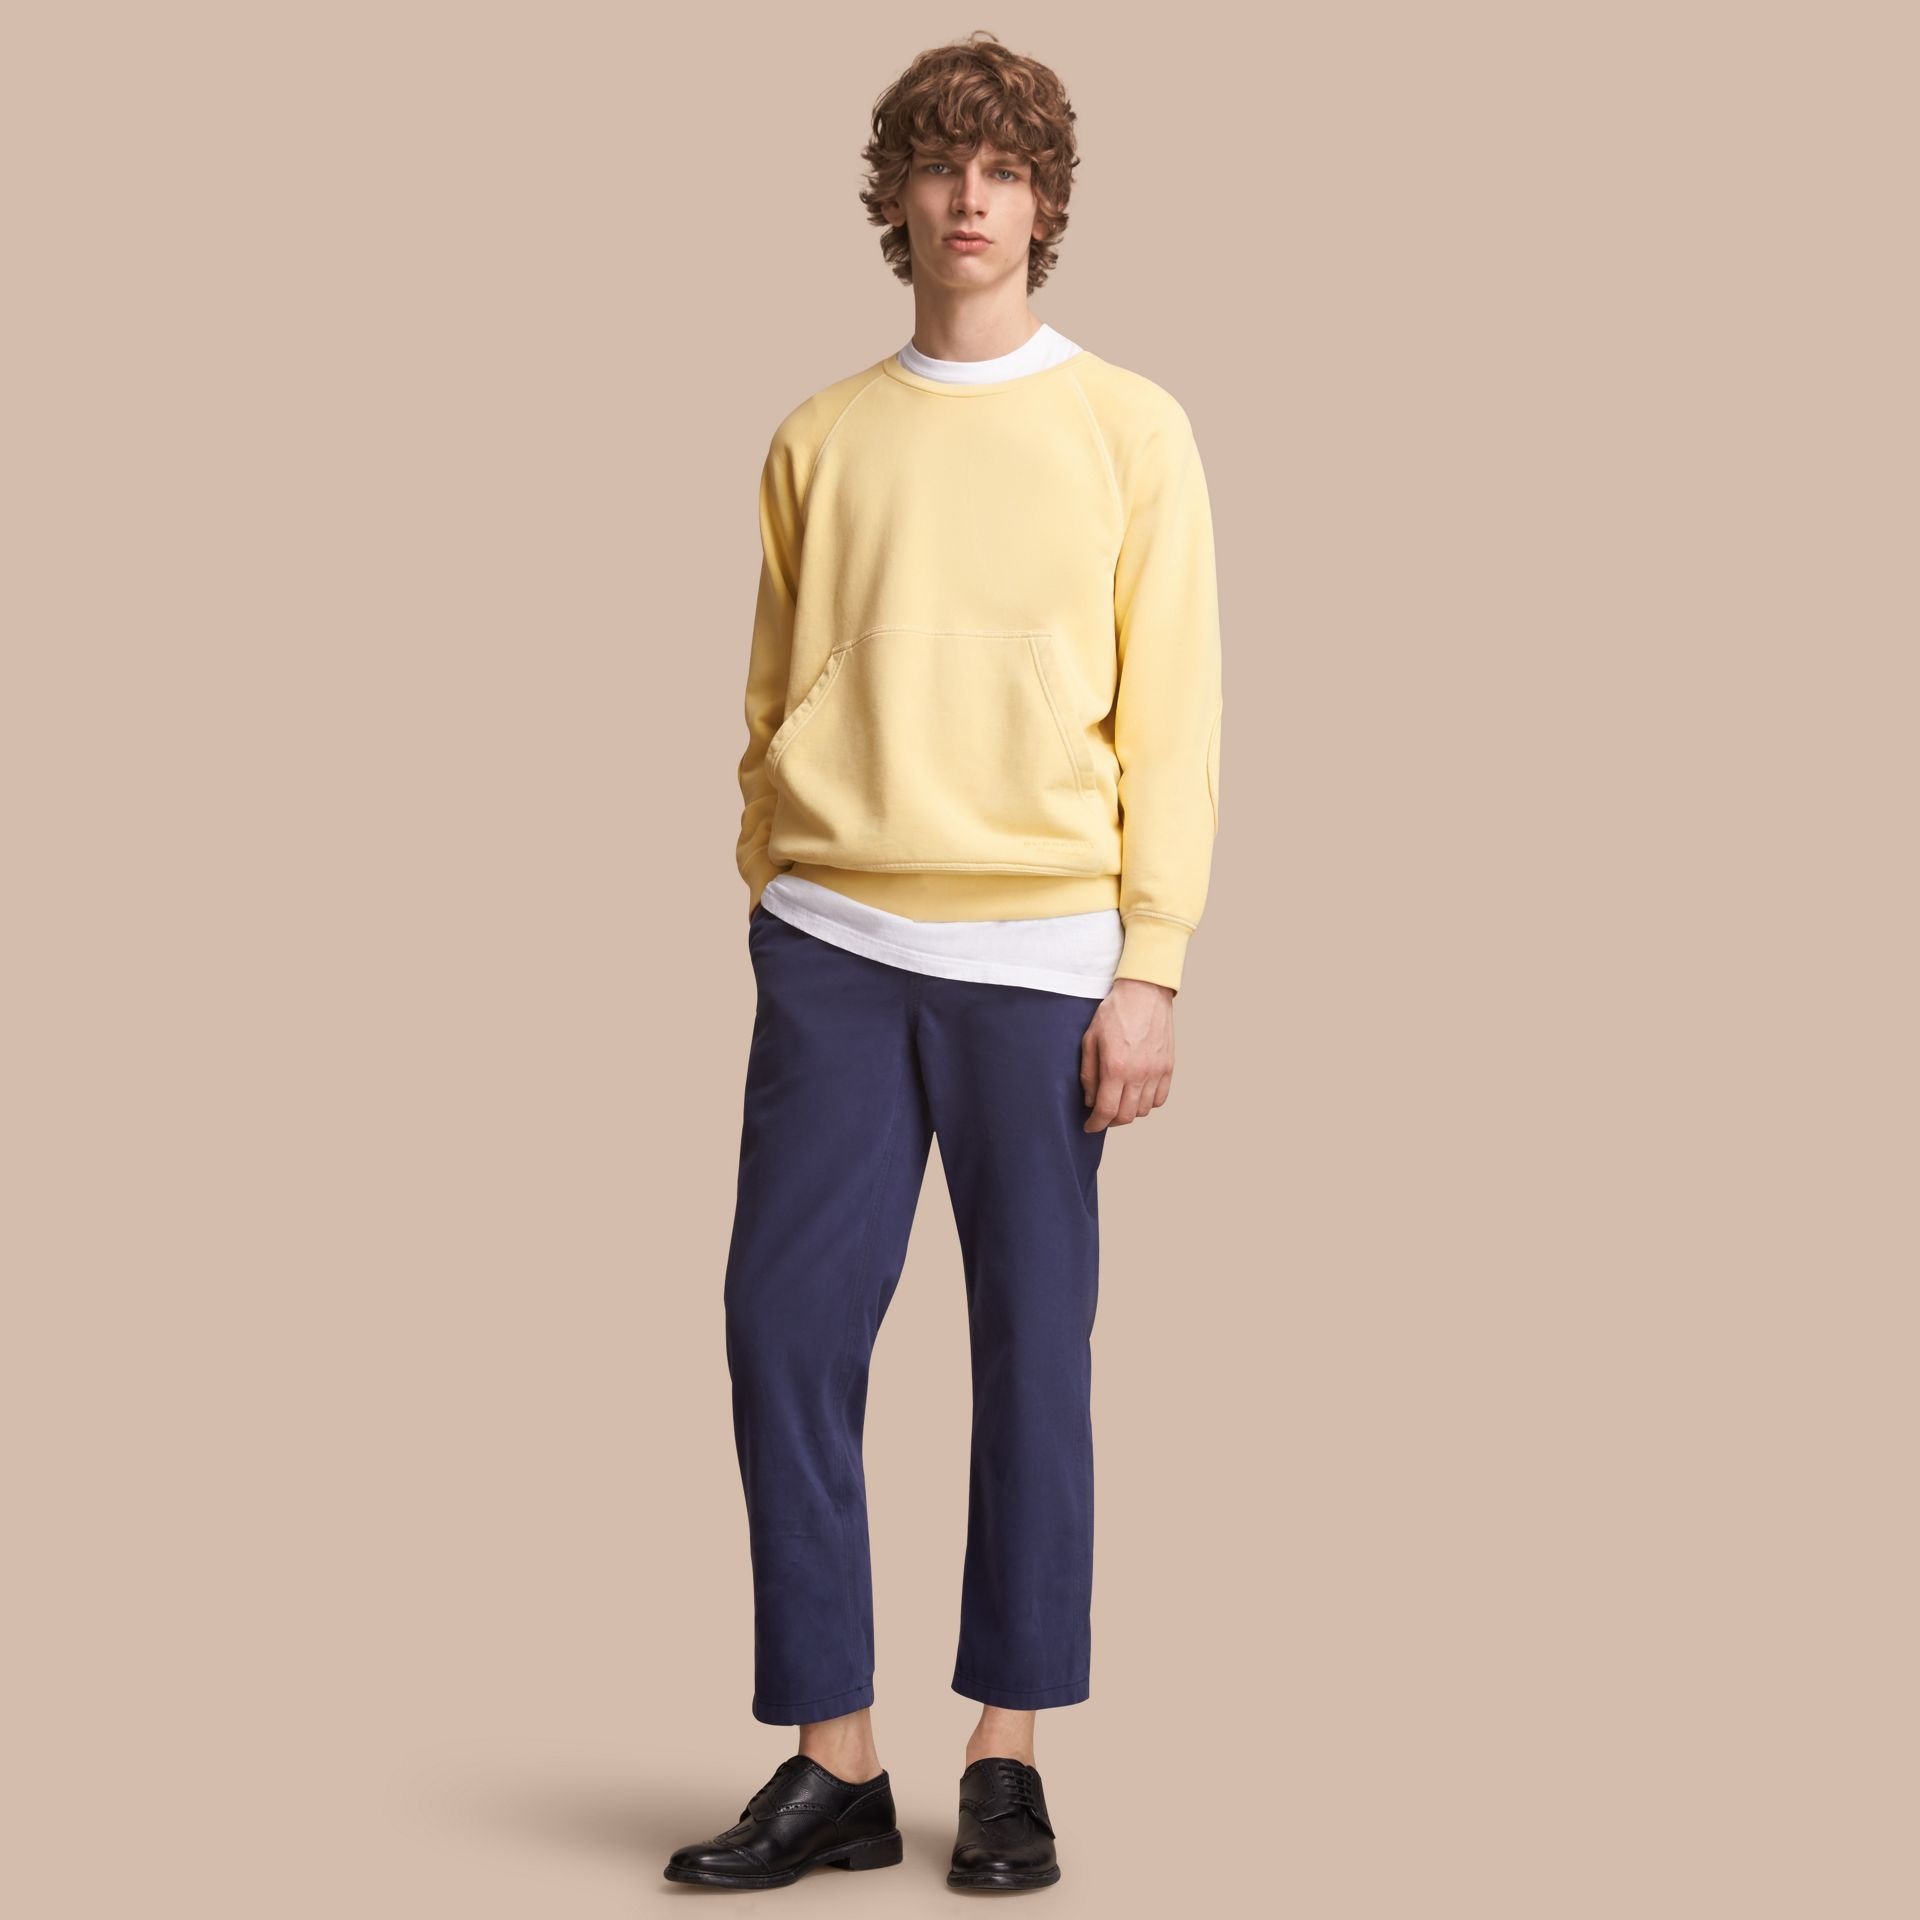 Unisex Pigment-dyed Cotton Oversize Sweatshirt Pale Yellow - gallery image 1